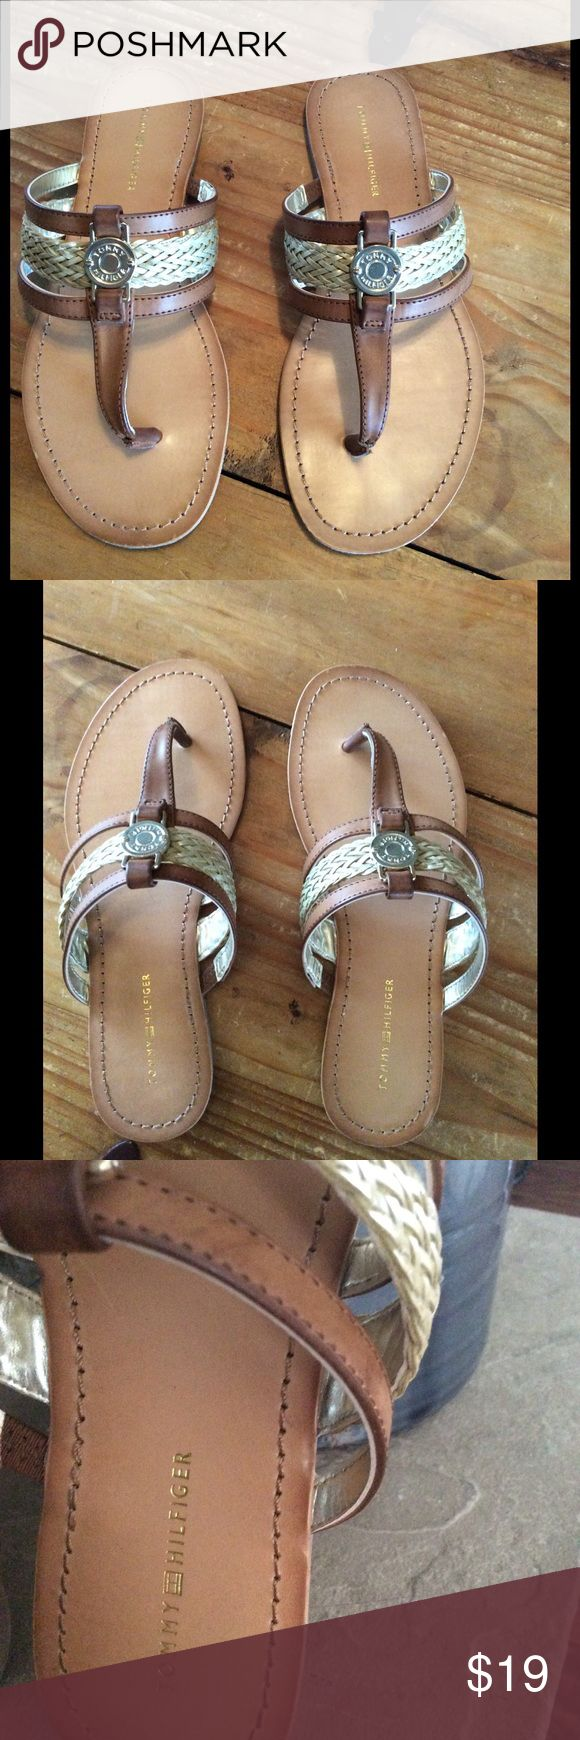 Tommy Hilfiger brown leather sandal. NEVER WORN. Brown leather sandal with 2 leather straps and decorative gold braiding in the middle. To finish the look a Tommy Hilfiger buckle on top. Tommy Hilfiger Shoes Sandals